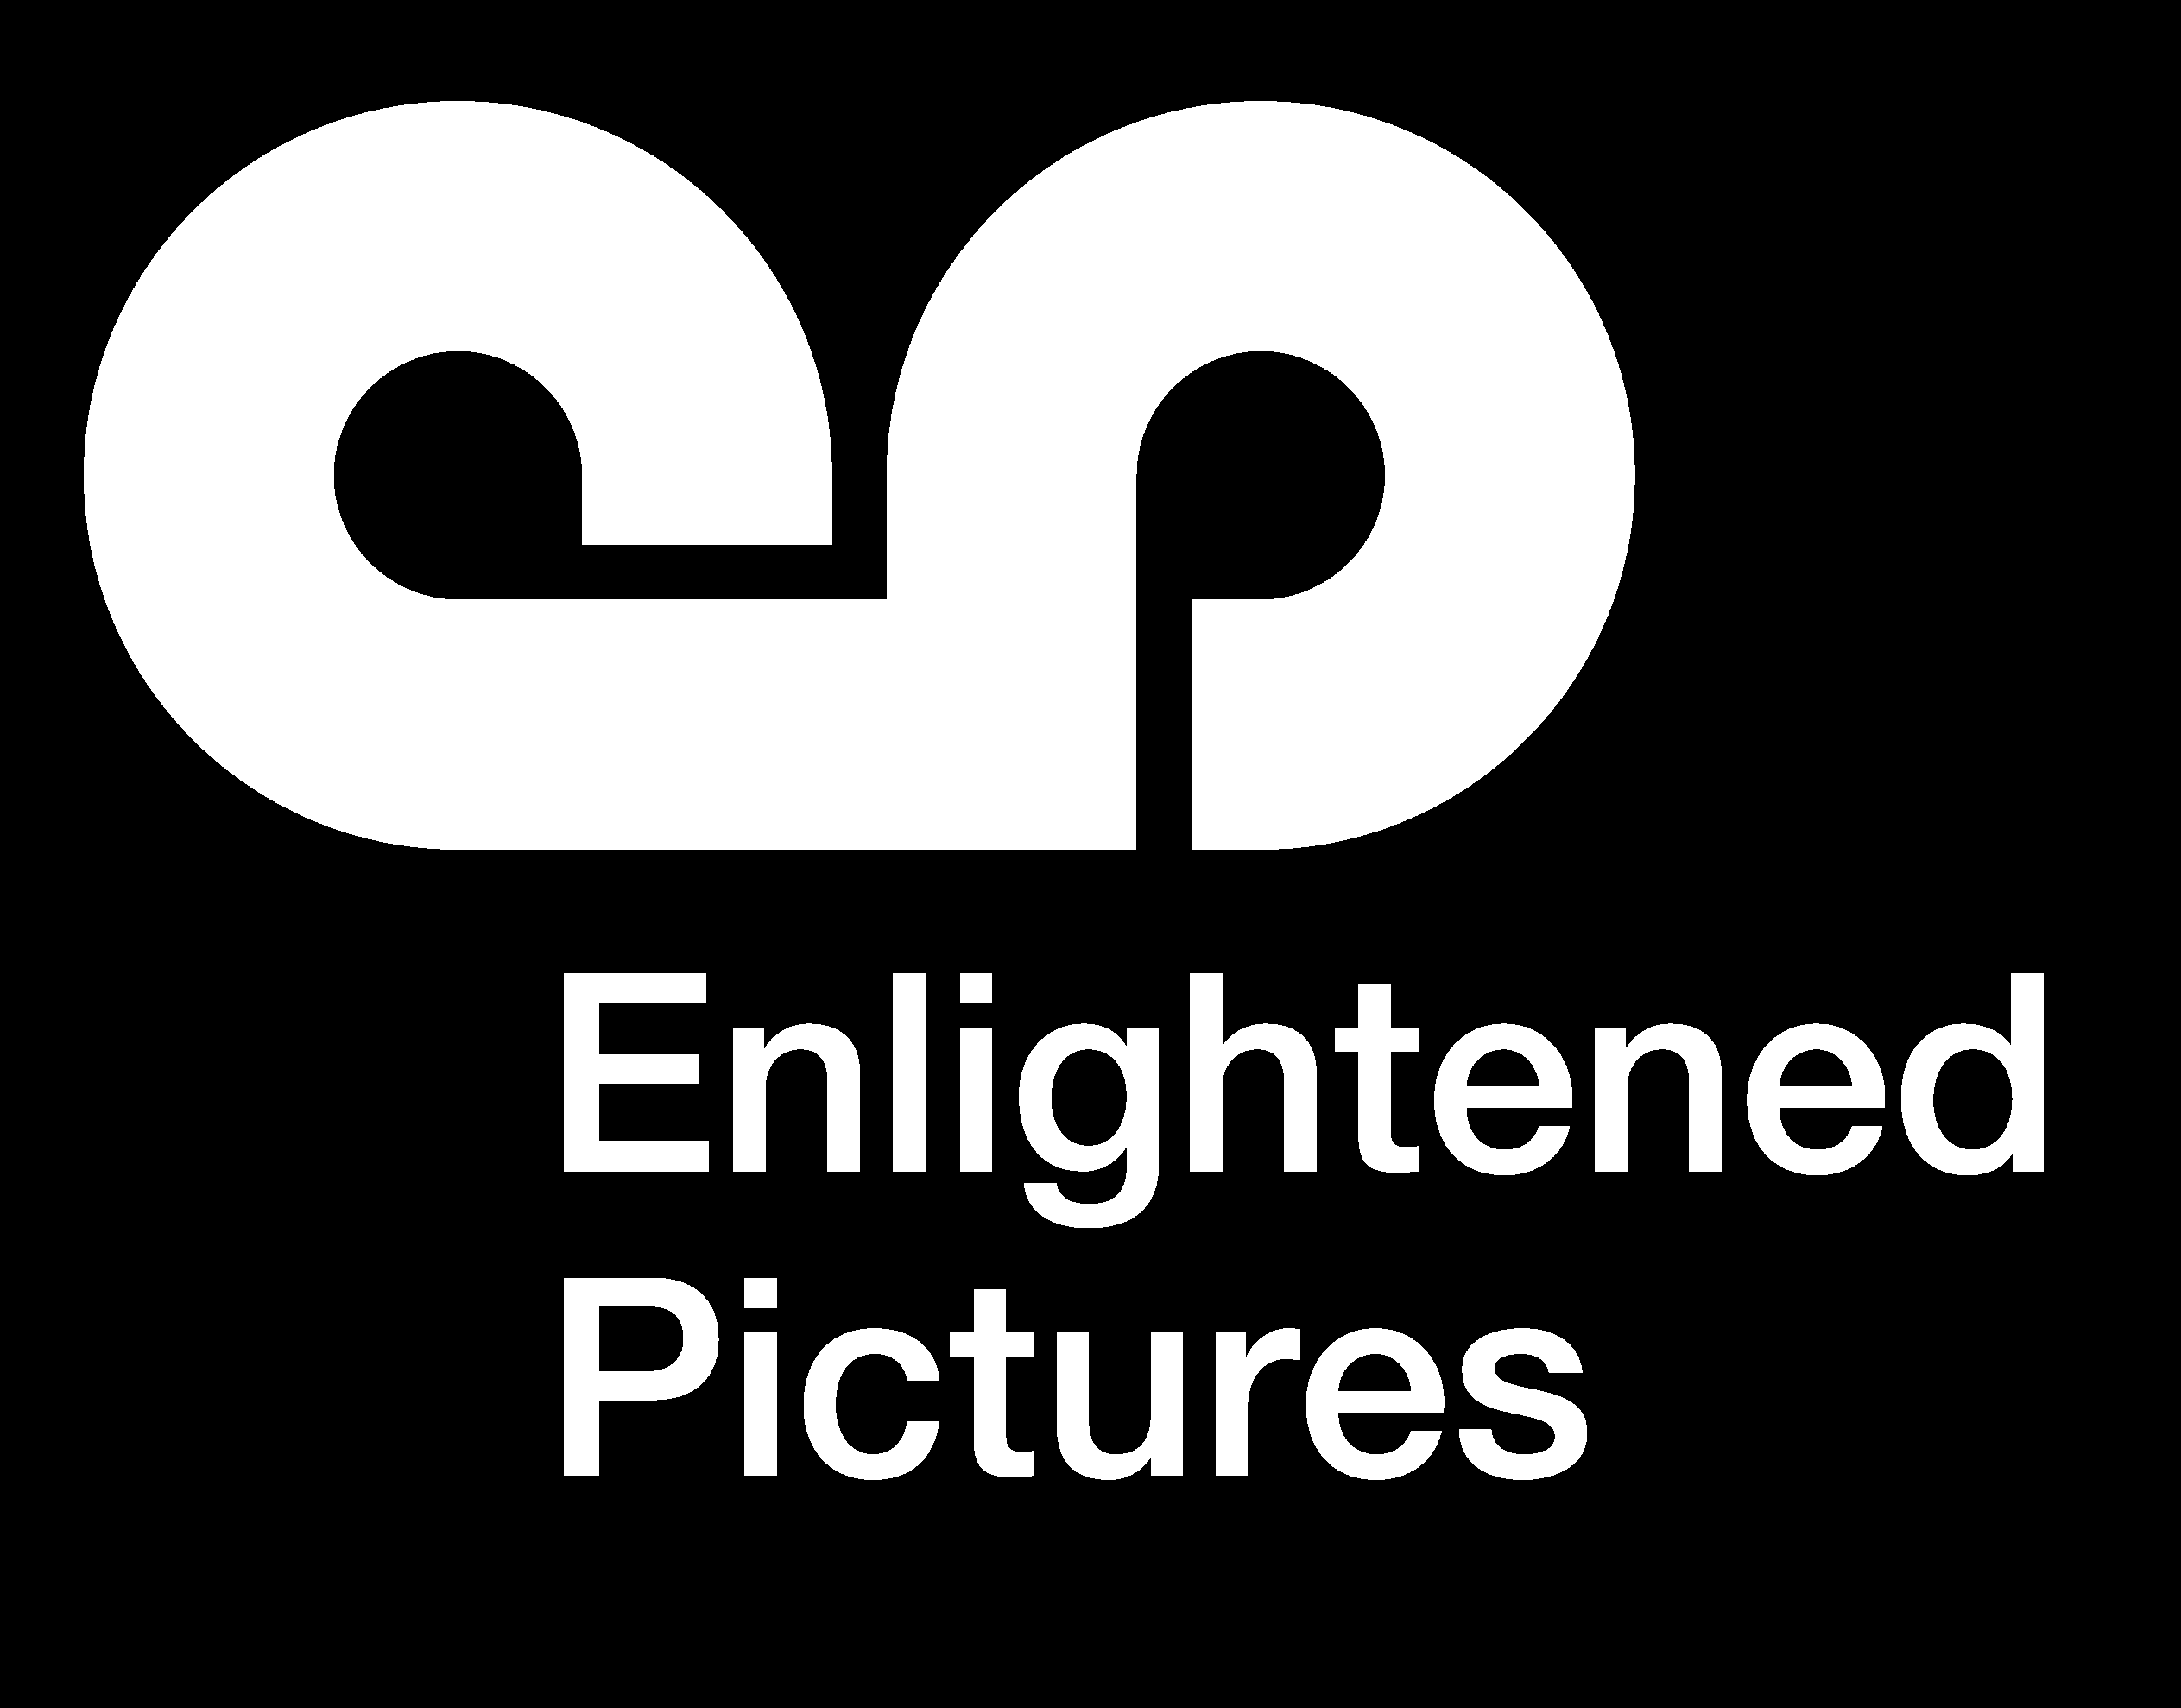 Enlightened Pictures